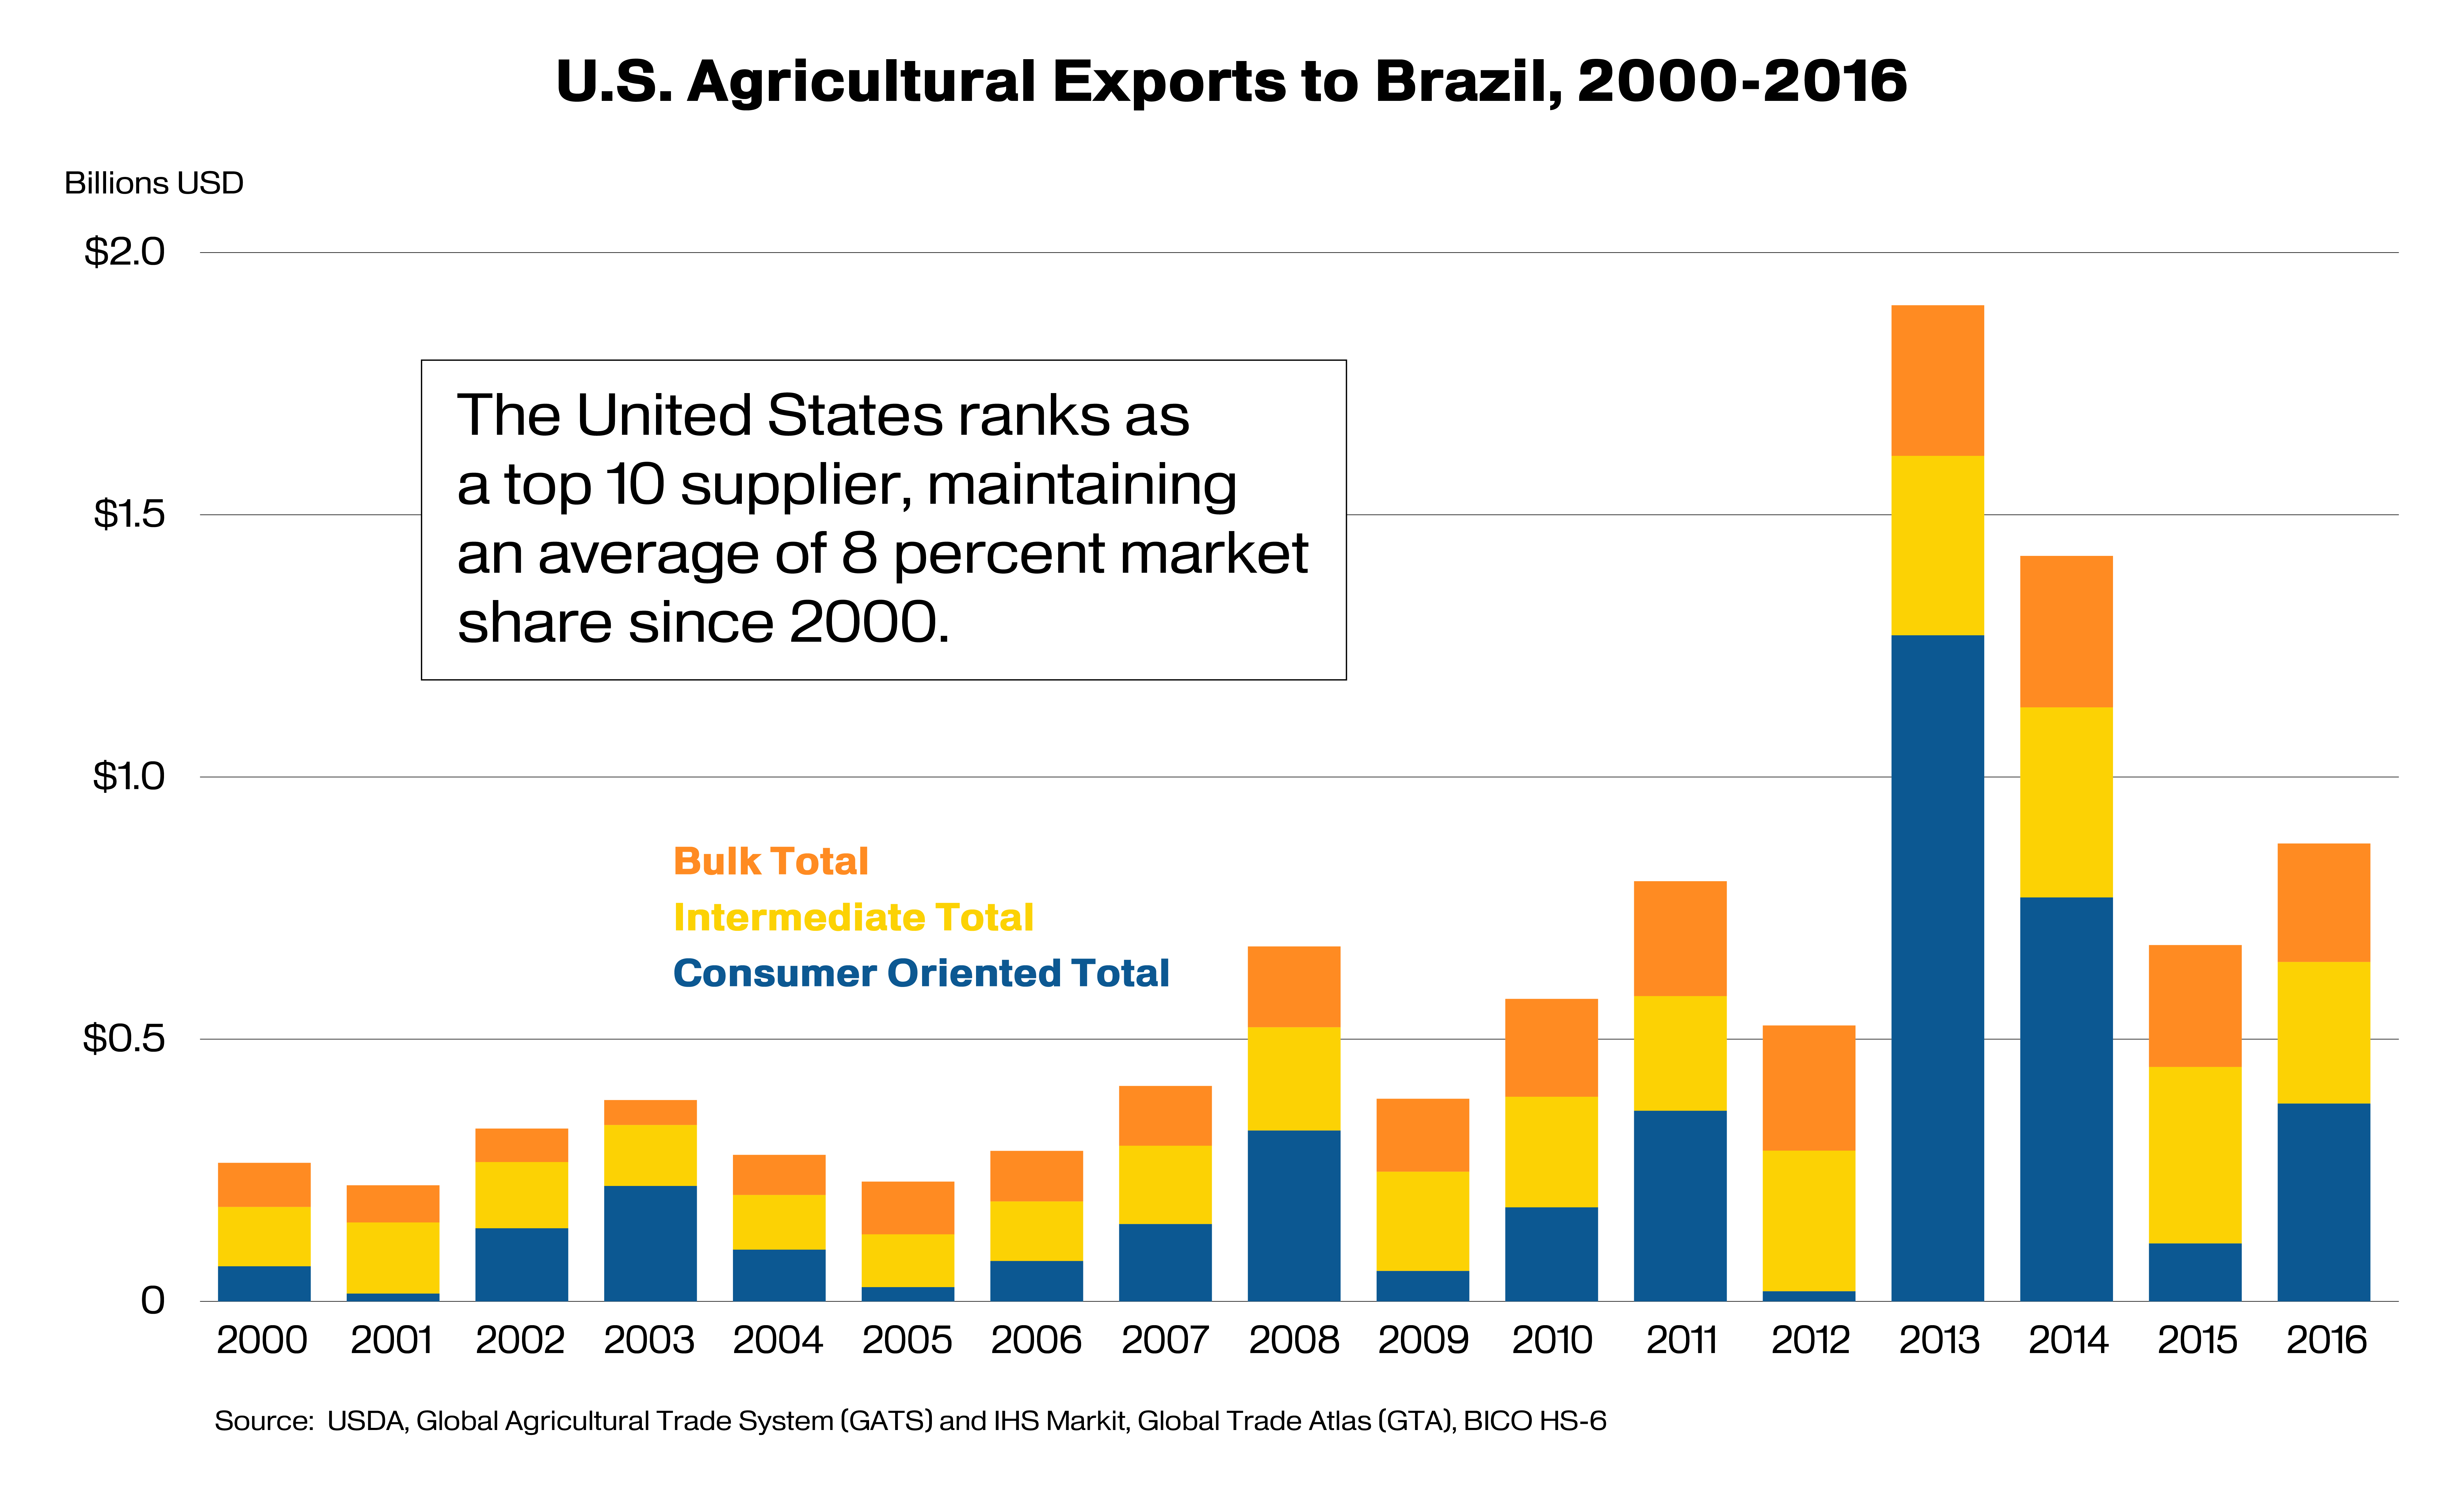 Stack column chart showing the composition of U.S. agricultural exports to Brazil from 2000-2016